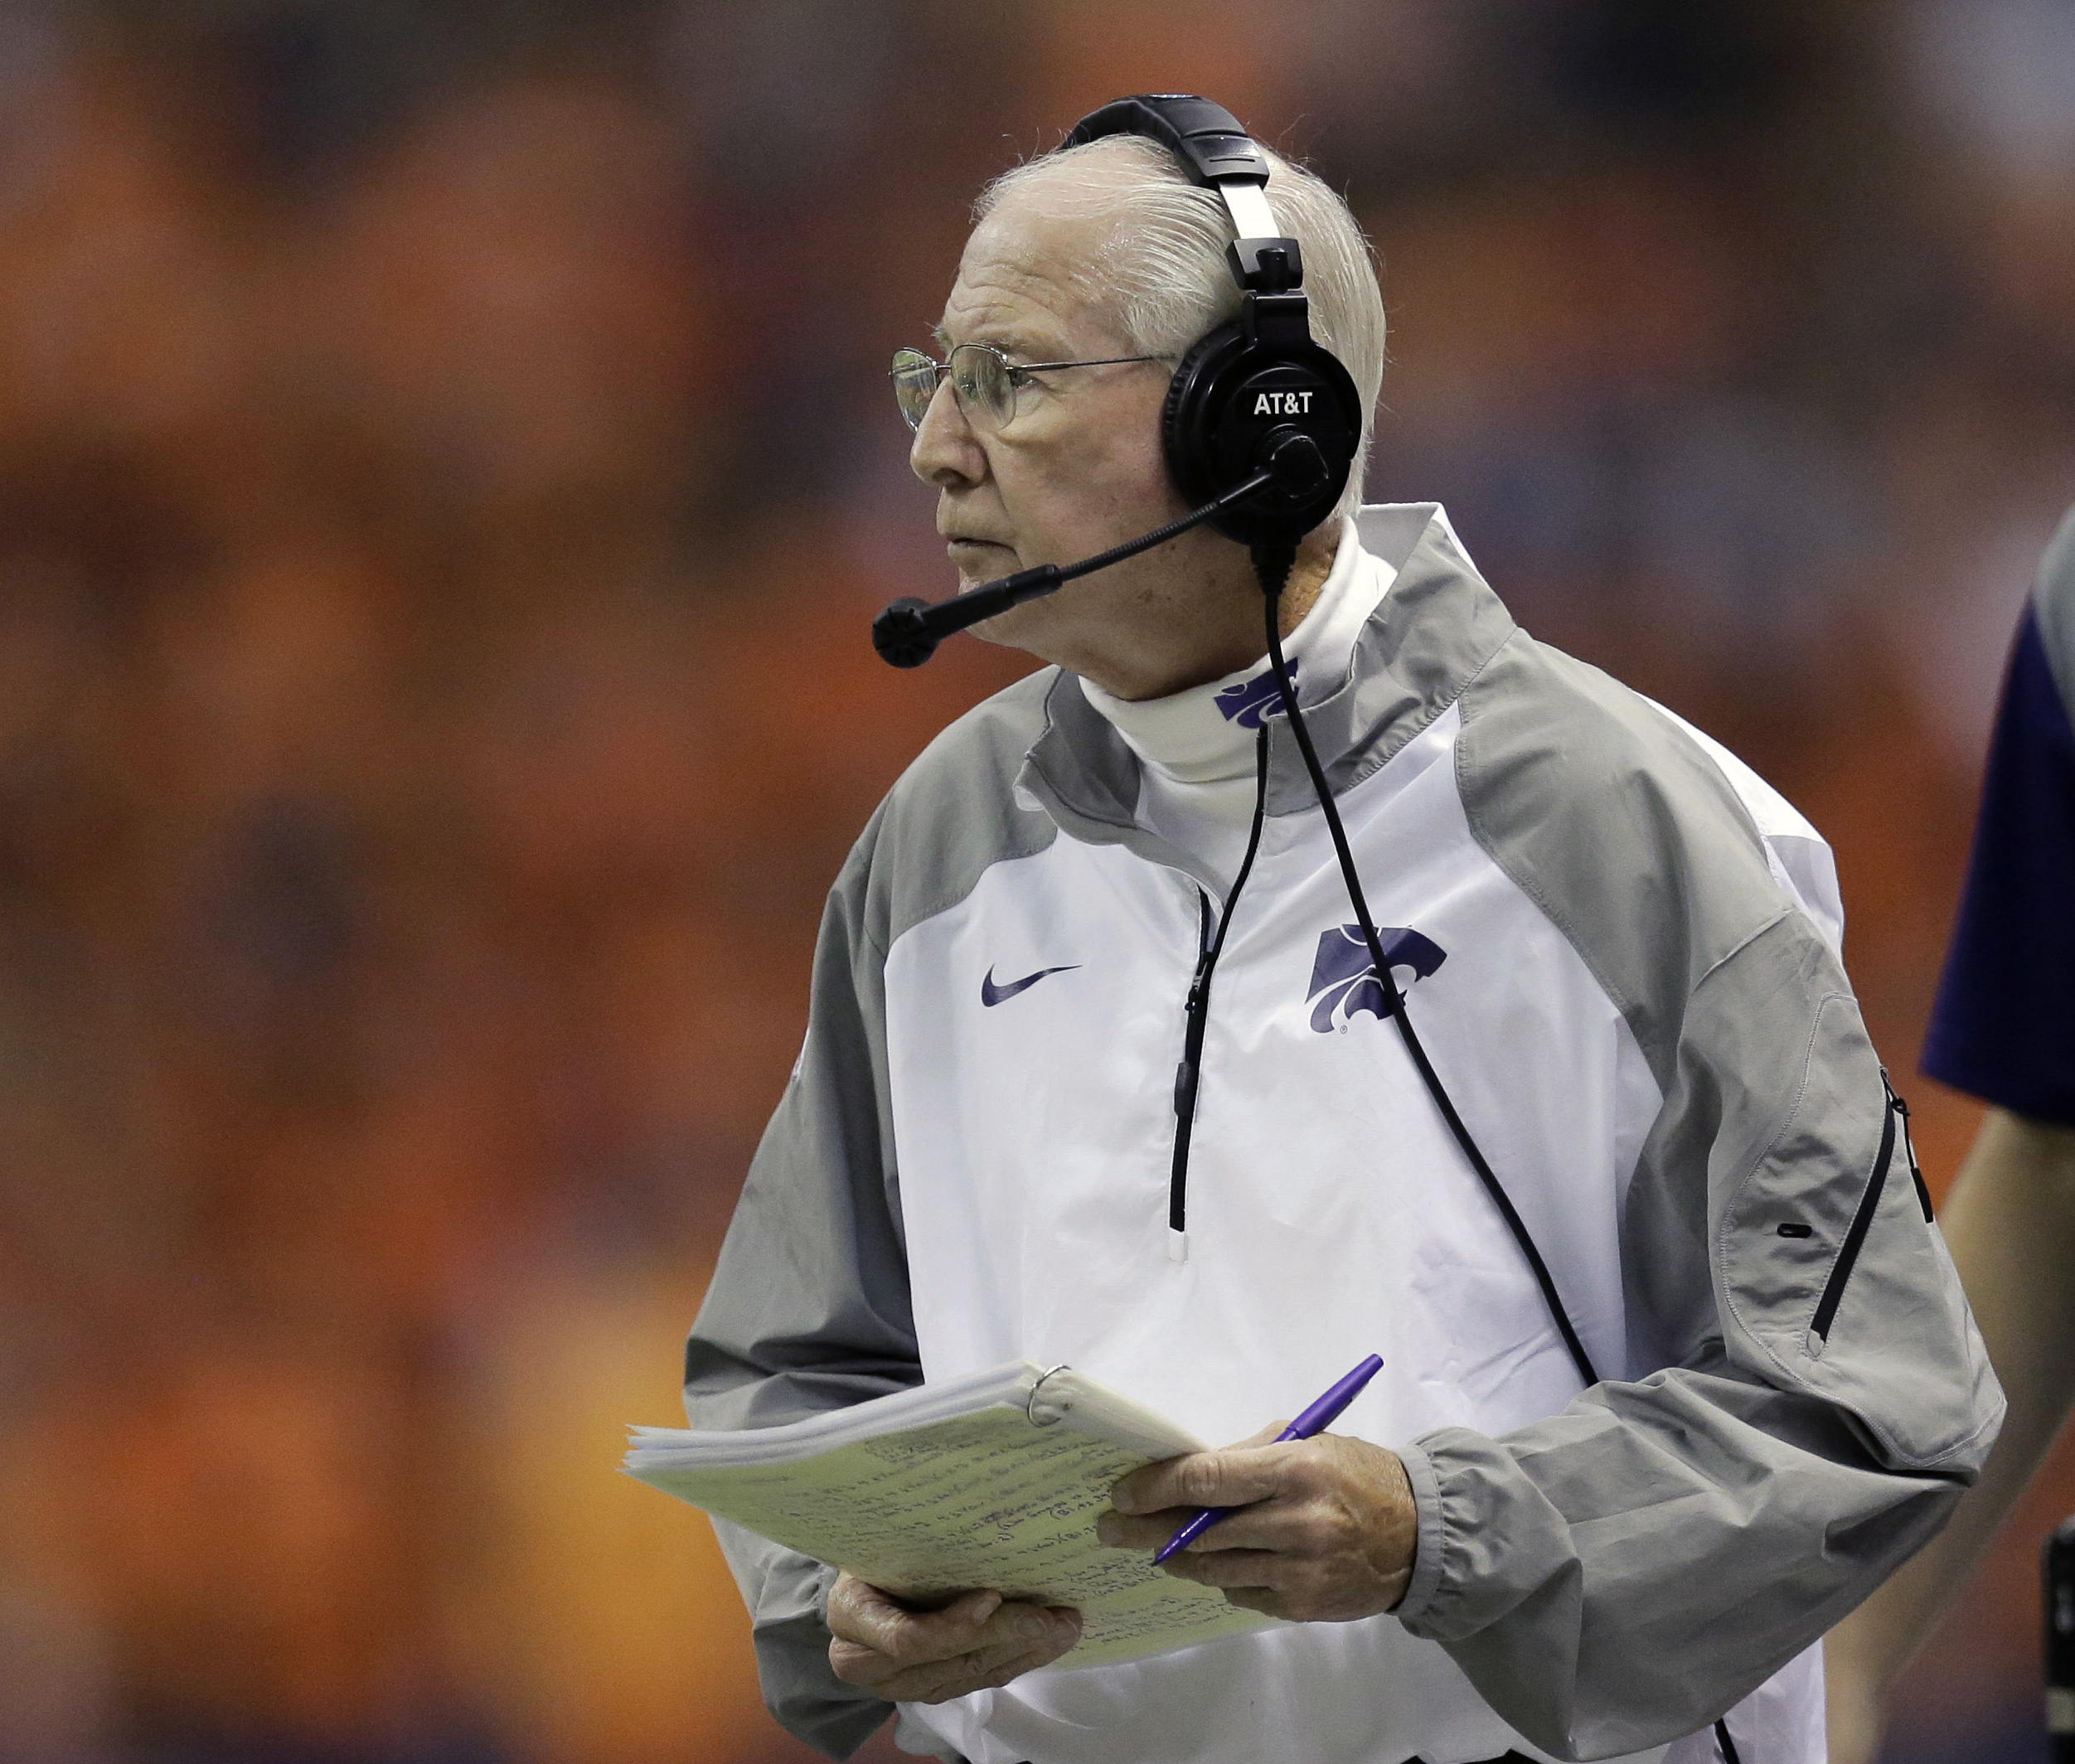 FILE - In this Sept. 12, 2015, file photo, Kansas State head coach Bill Snyder watches from the sideline during the first half of an NCAA college football game against UTSA, in San Antonio. Kansas State has earned a reputation for soft scheduling under Bi